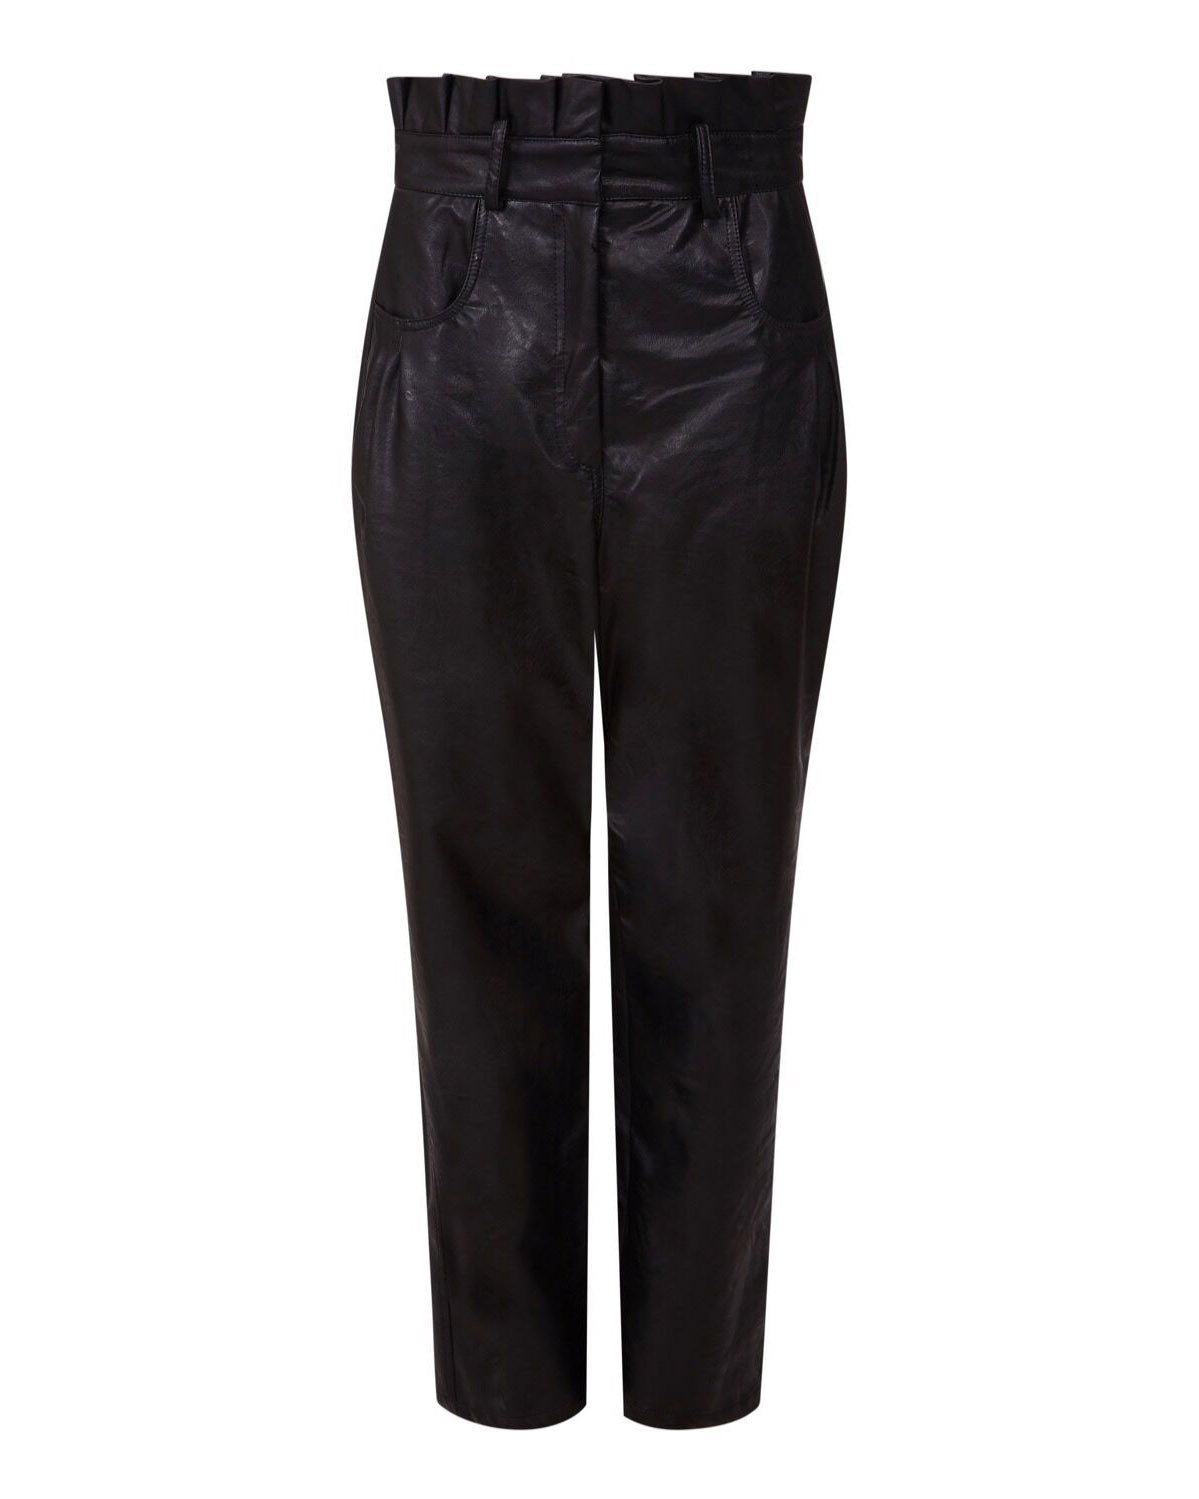 Venus Trousers in Midnight Gleam